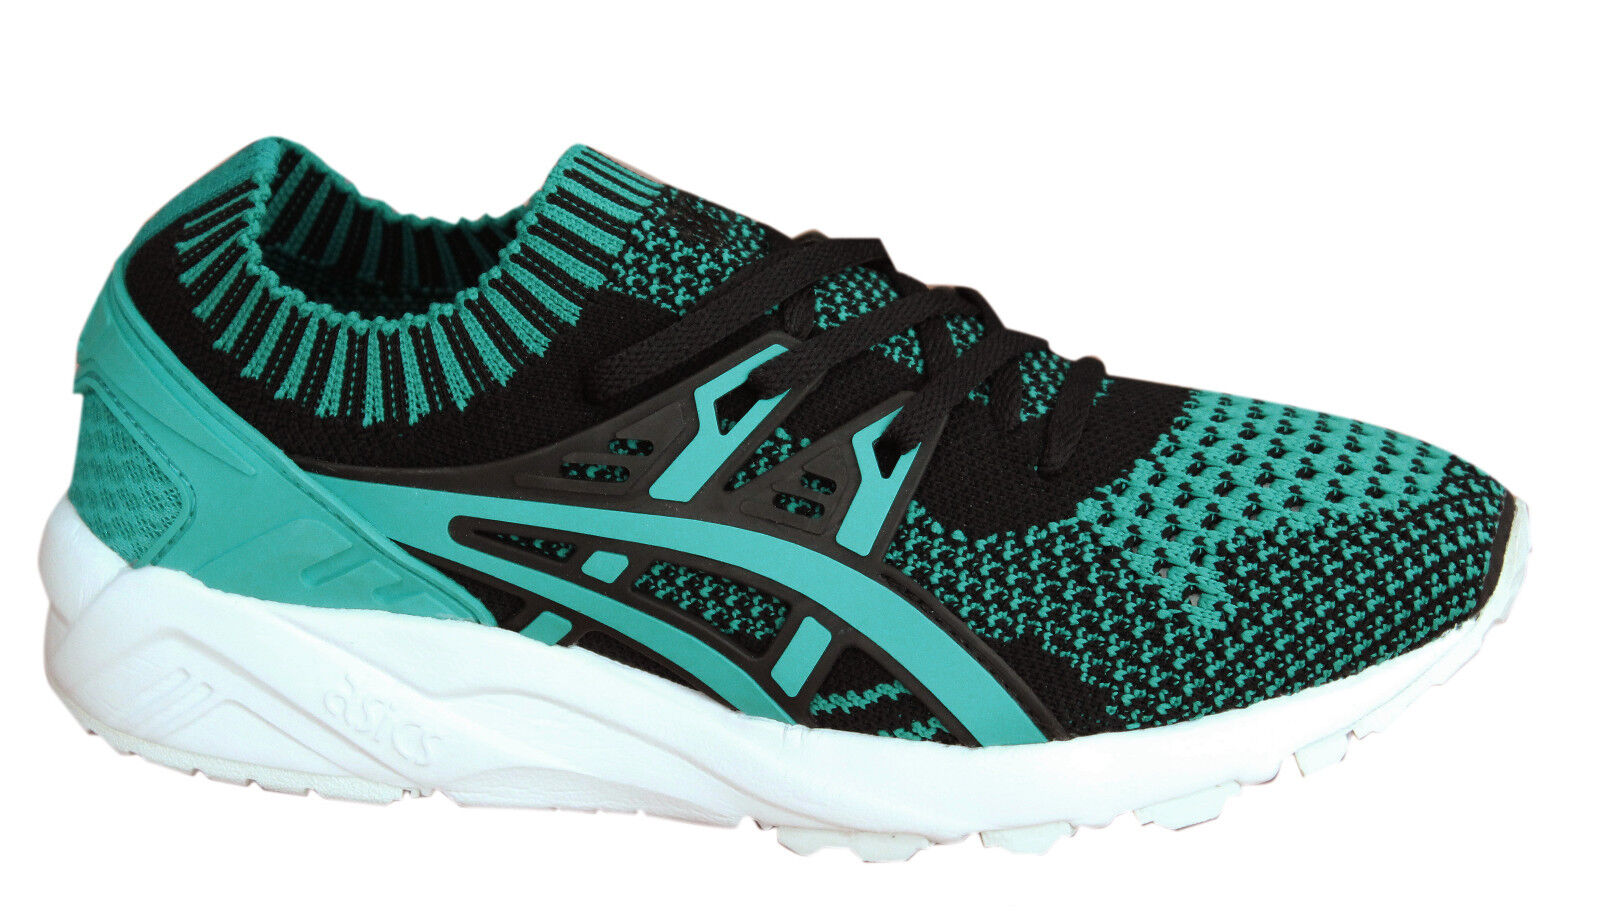 Asics Gel-Kayano Trainers Knit Damenschuhe Schuhes Lace Up Textile Green H7W7N 8383 M9